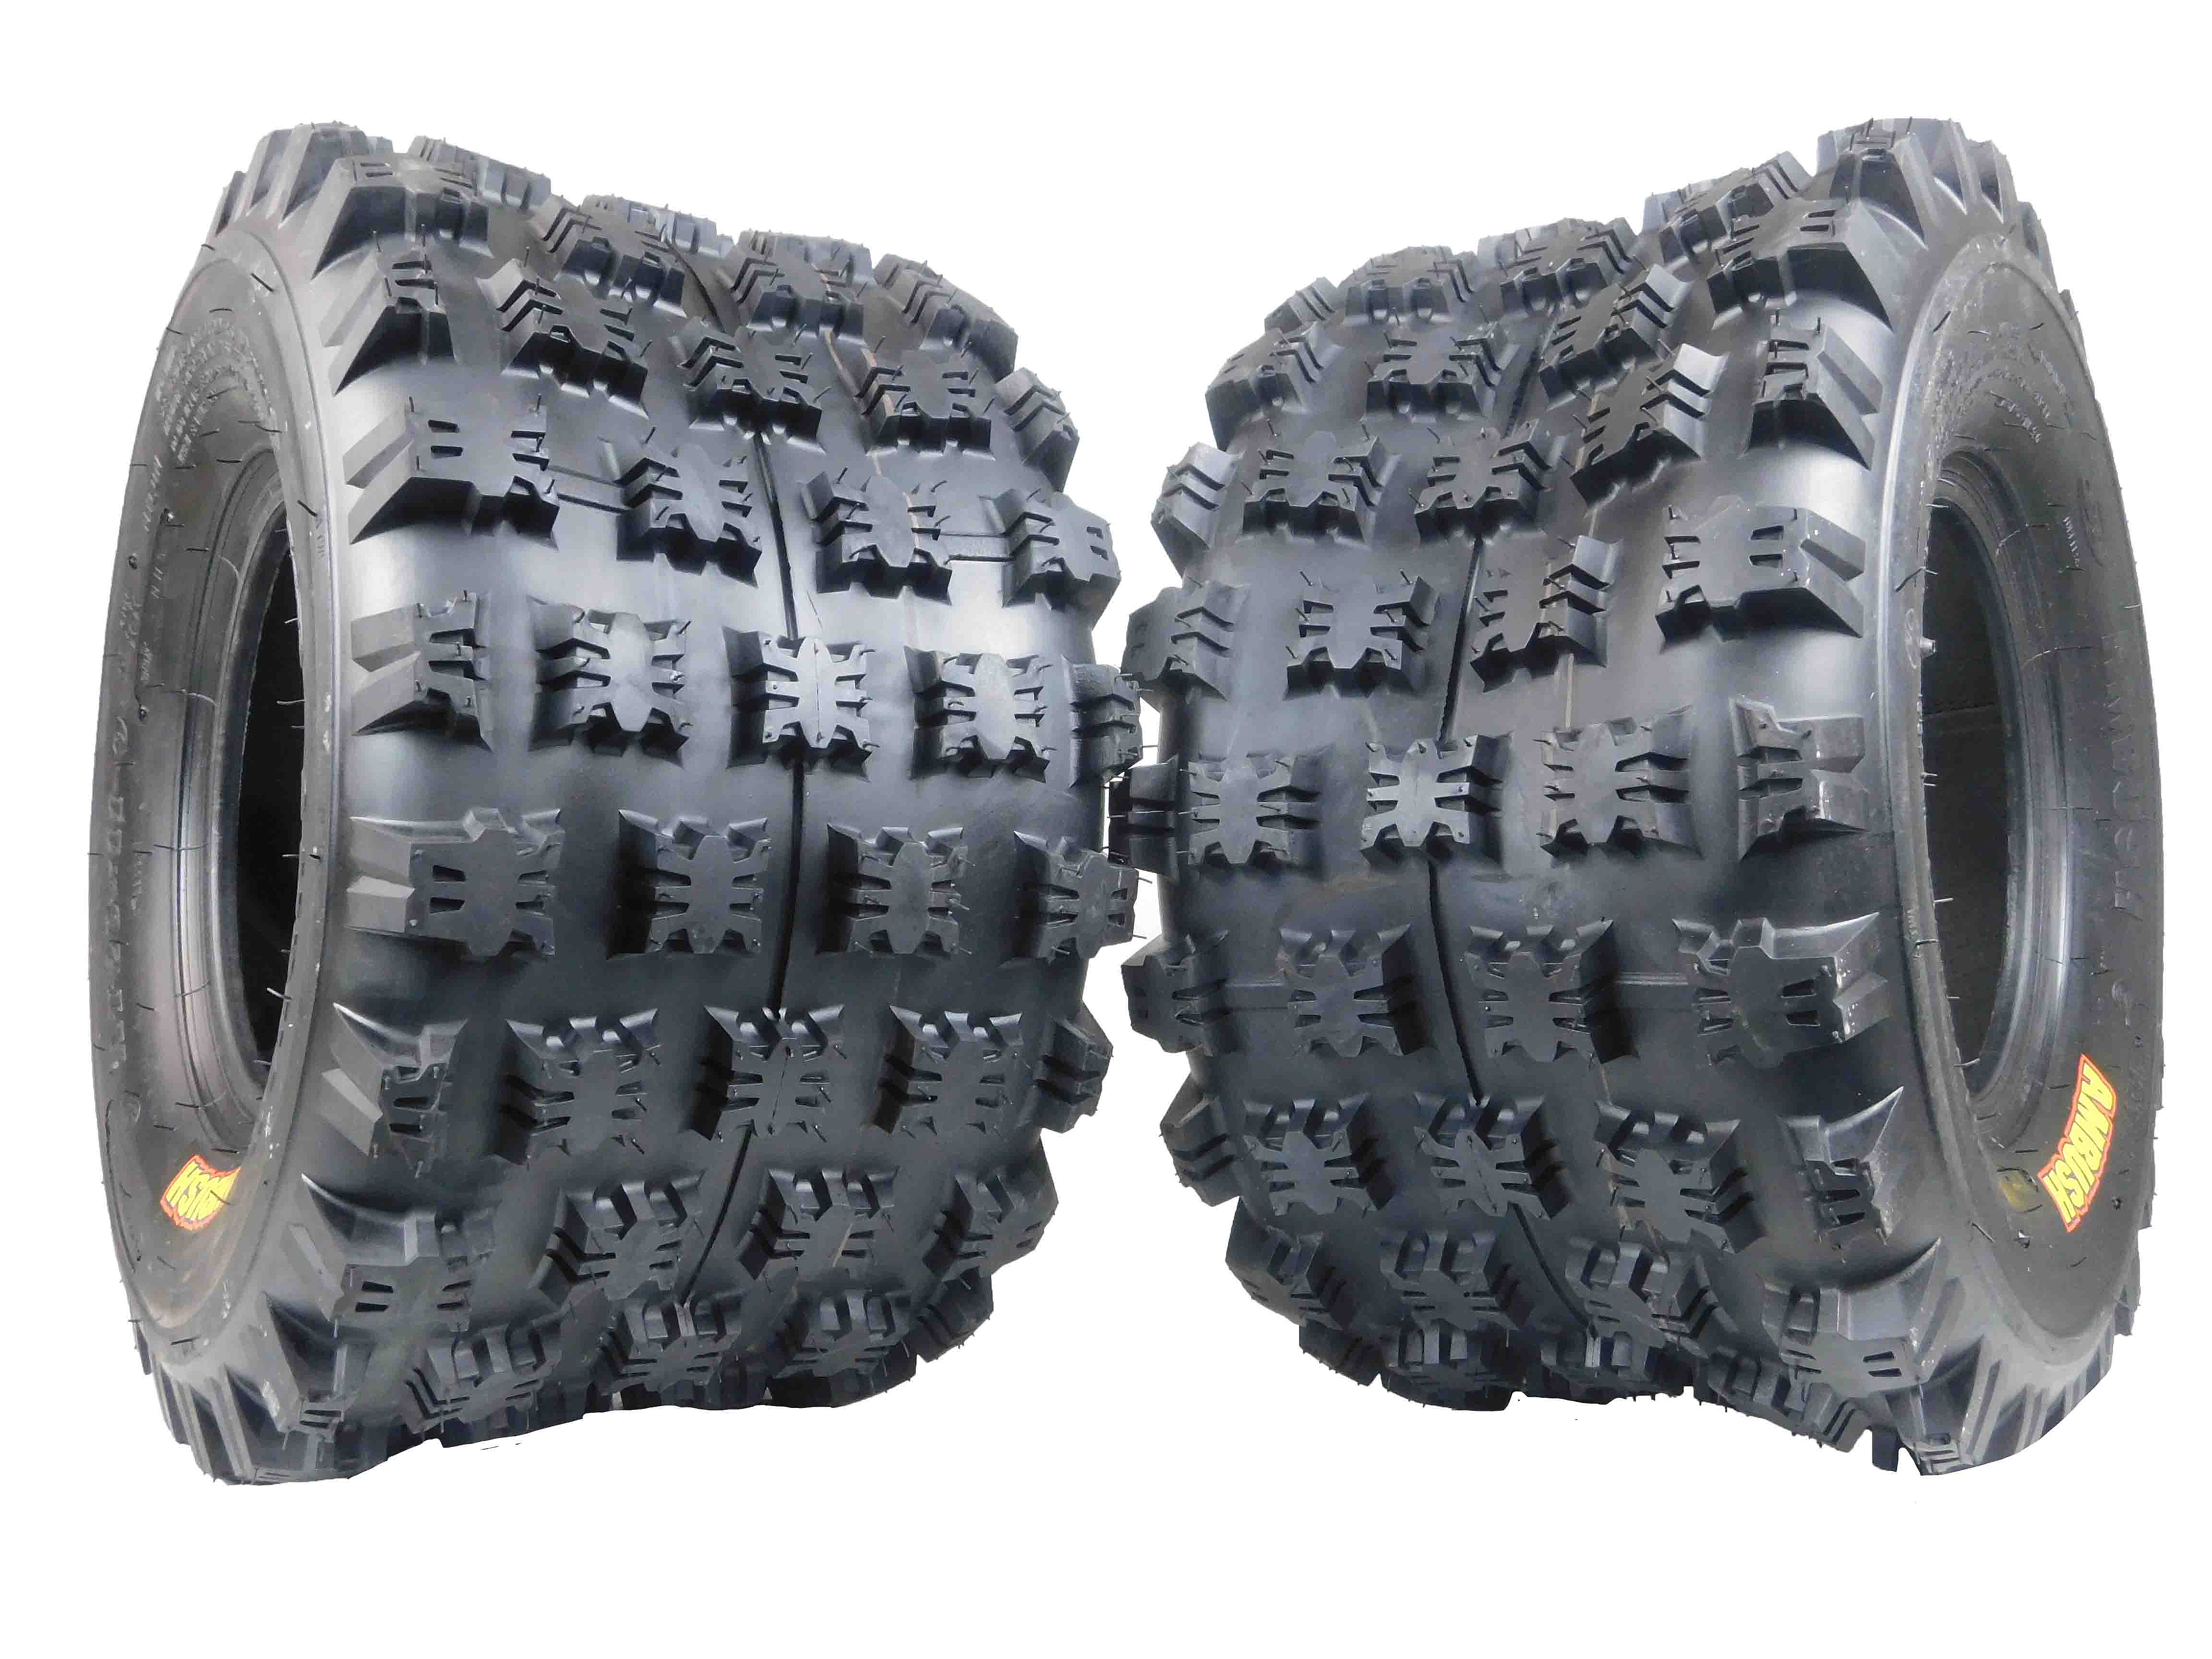 Ambush-20x11-9-ATV-Tire-2-Pack-Rear-4Ply-image-1